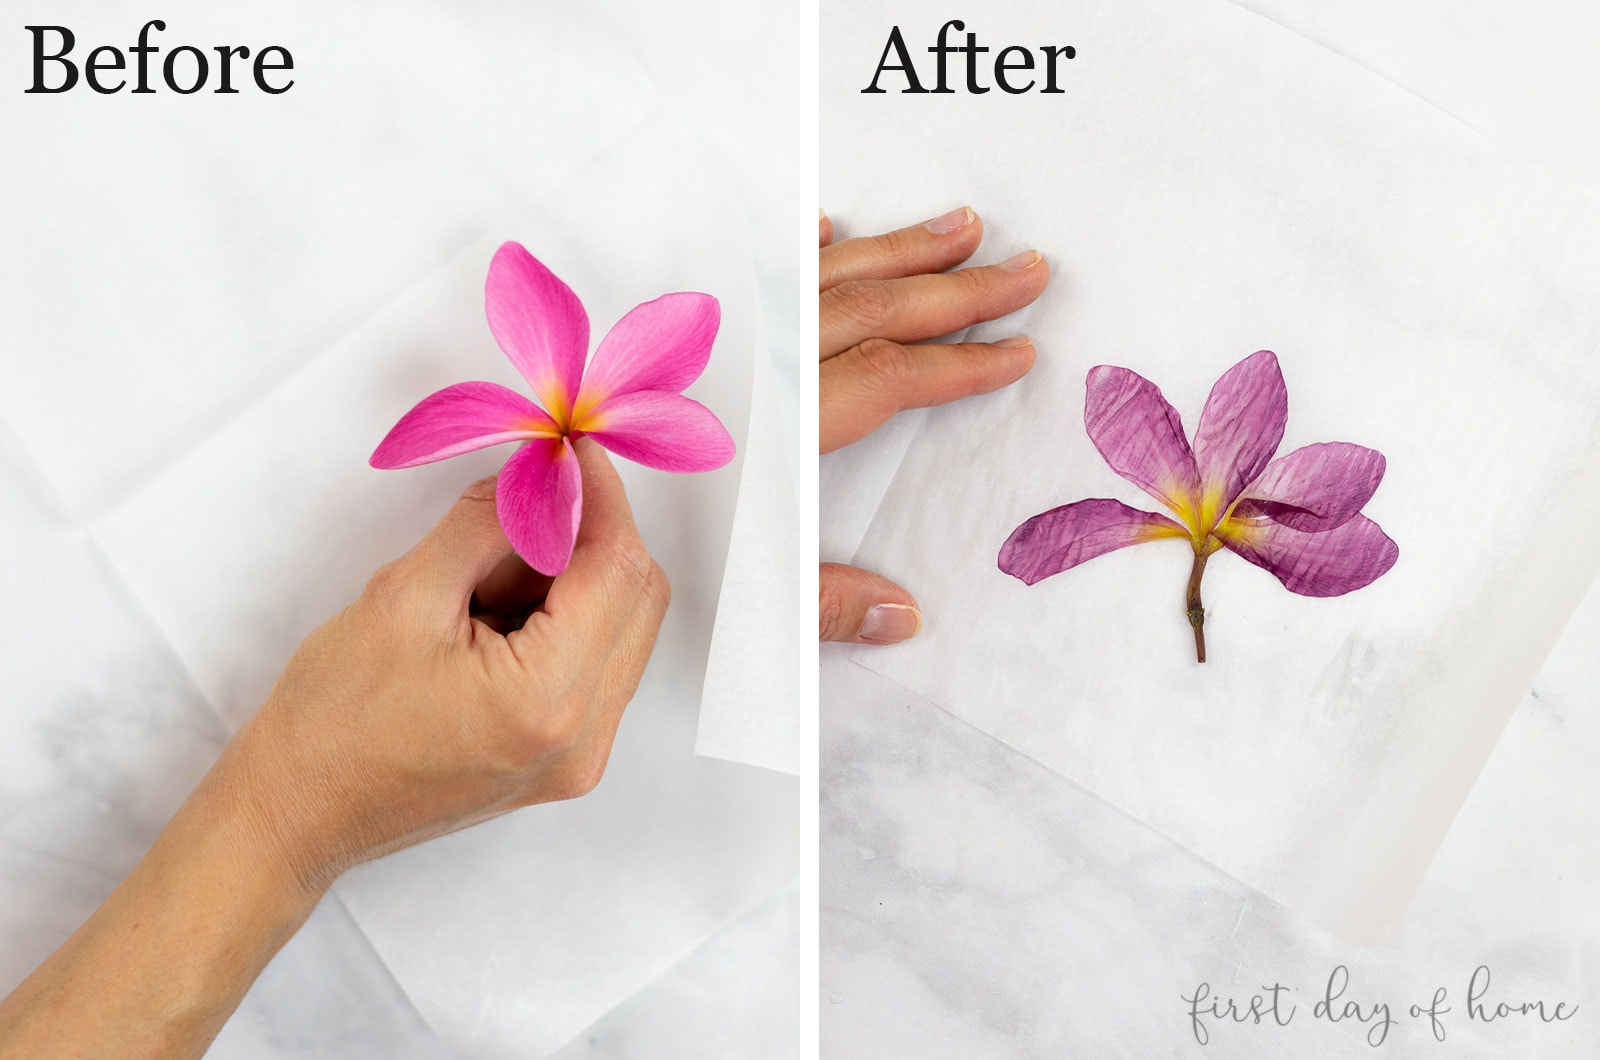 Plumeria bloom before and after ironing